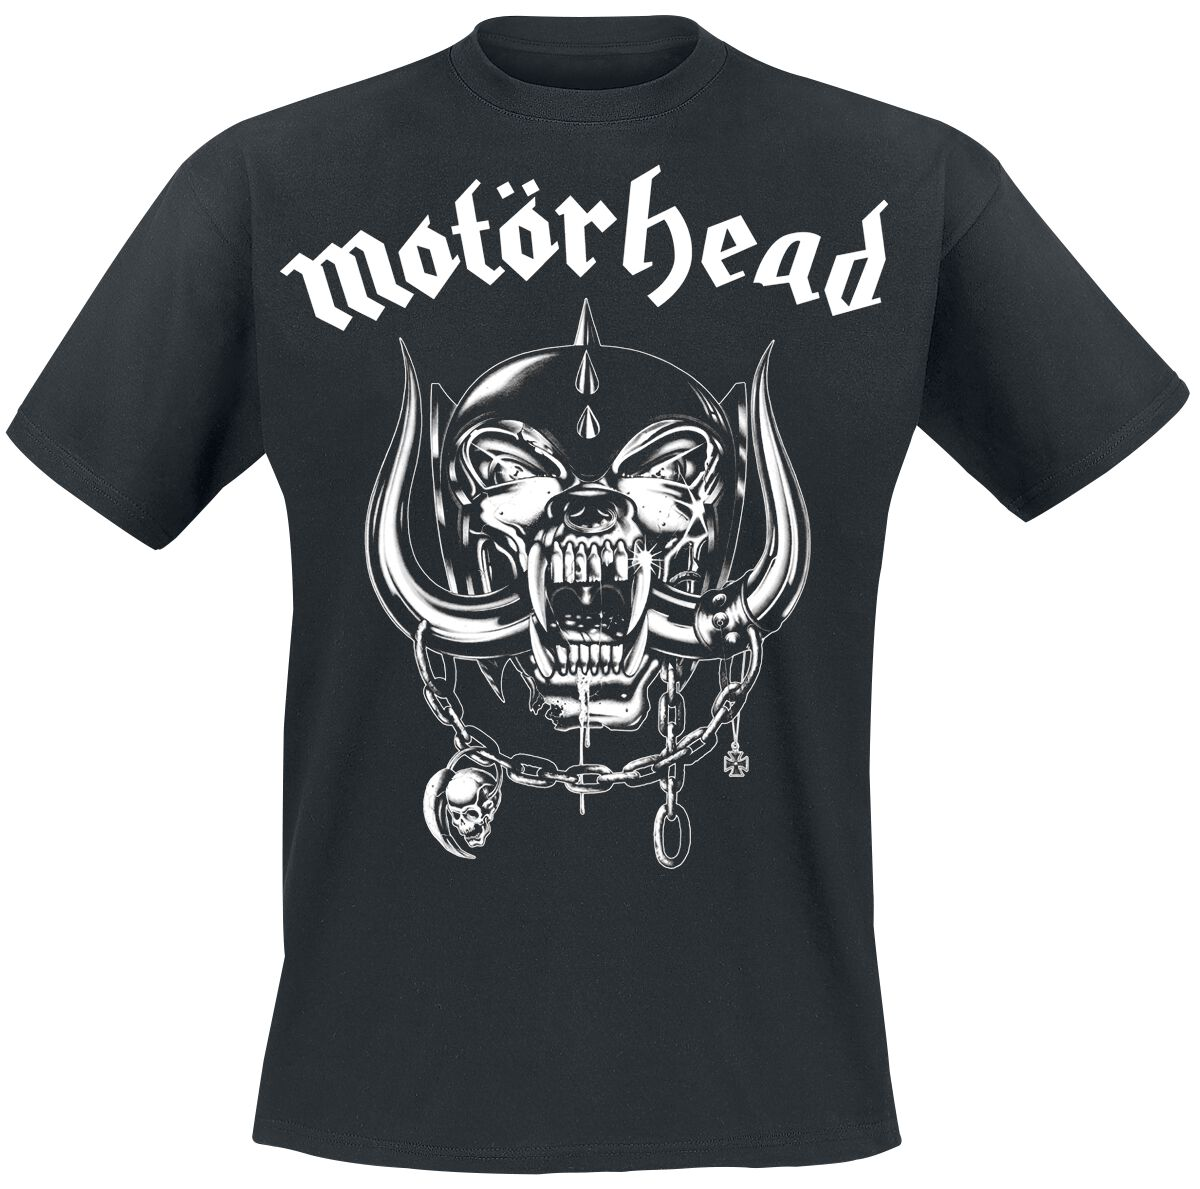 Motörhead Make A Difference T-Shirt black